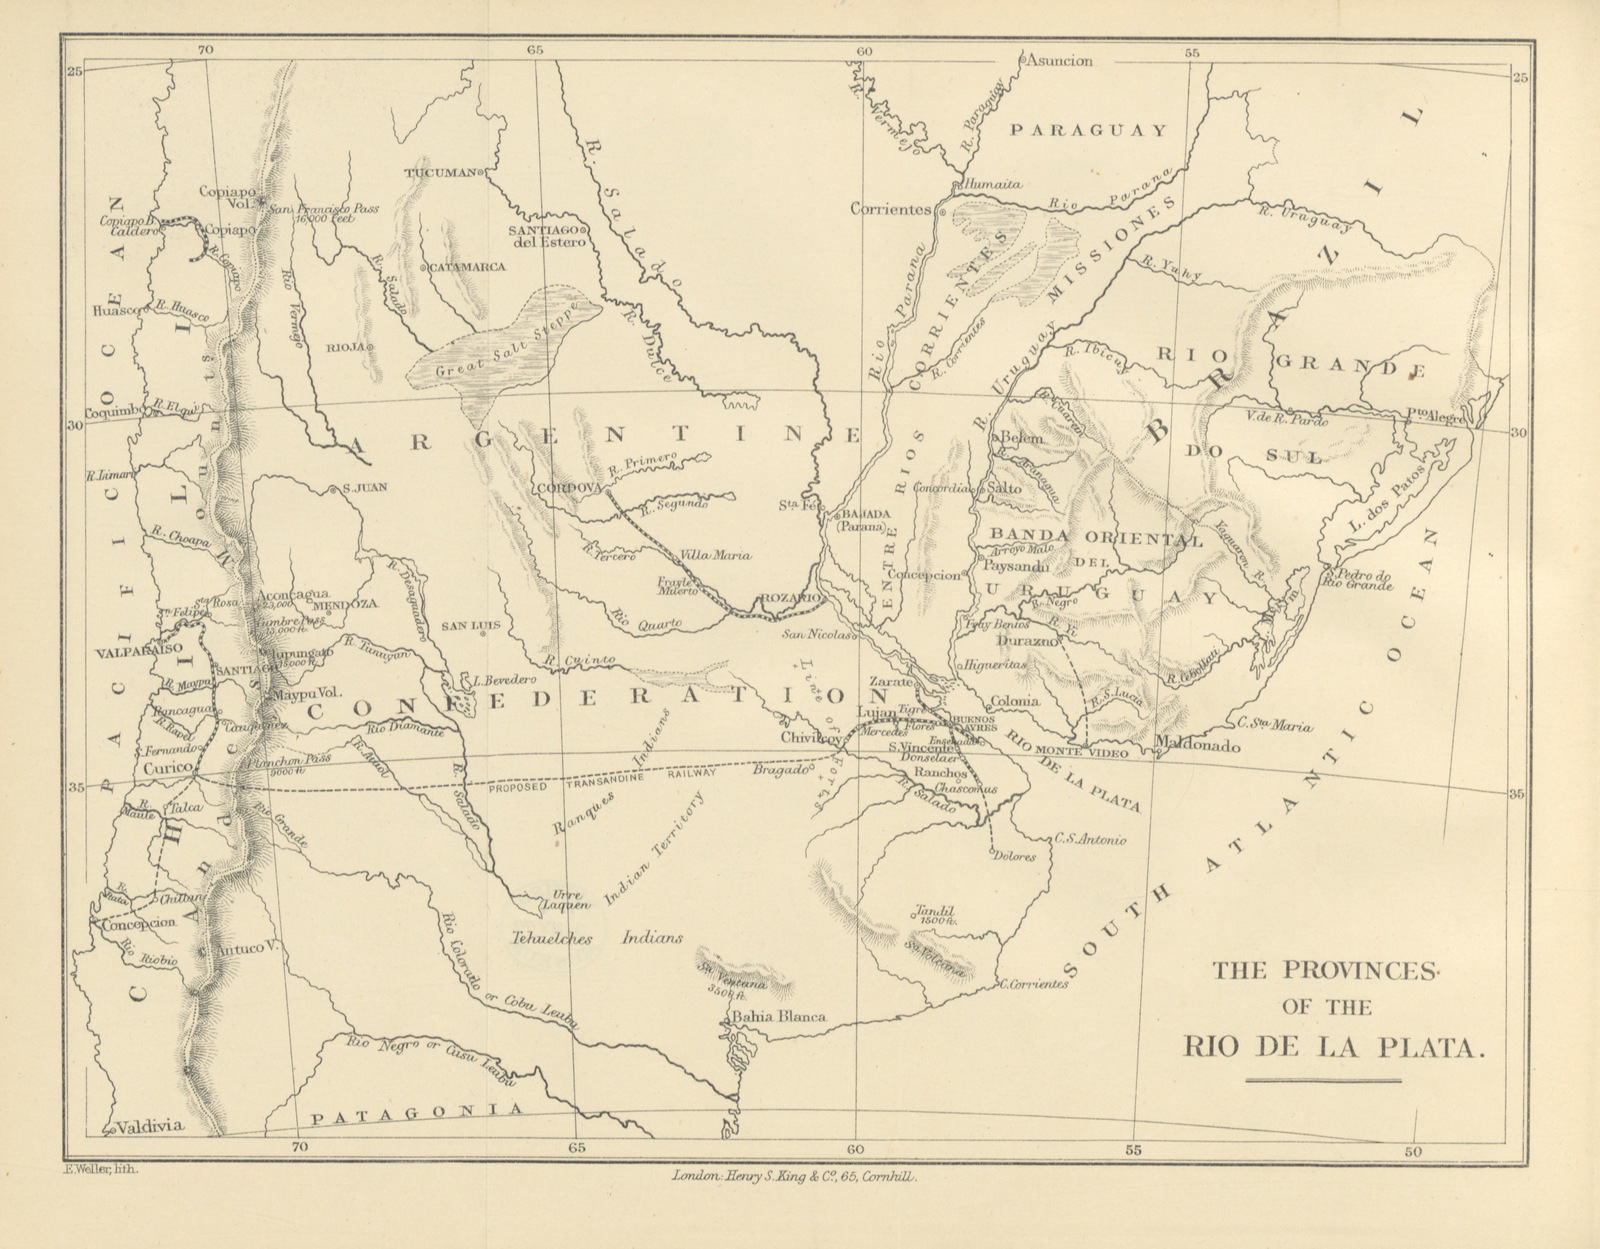 map from